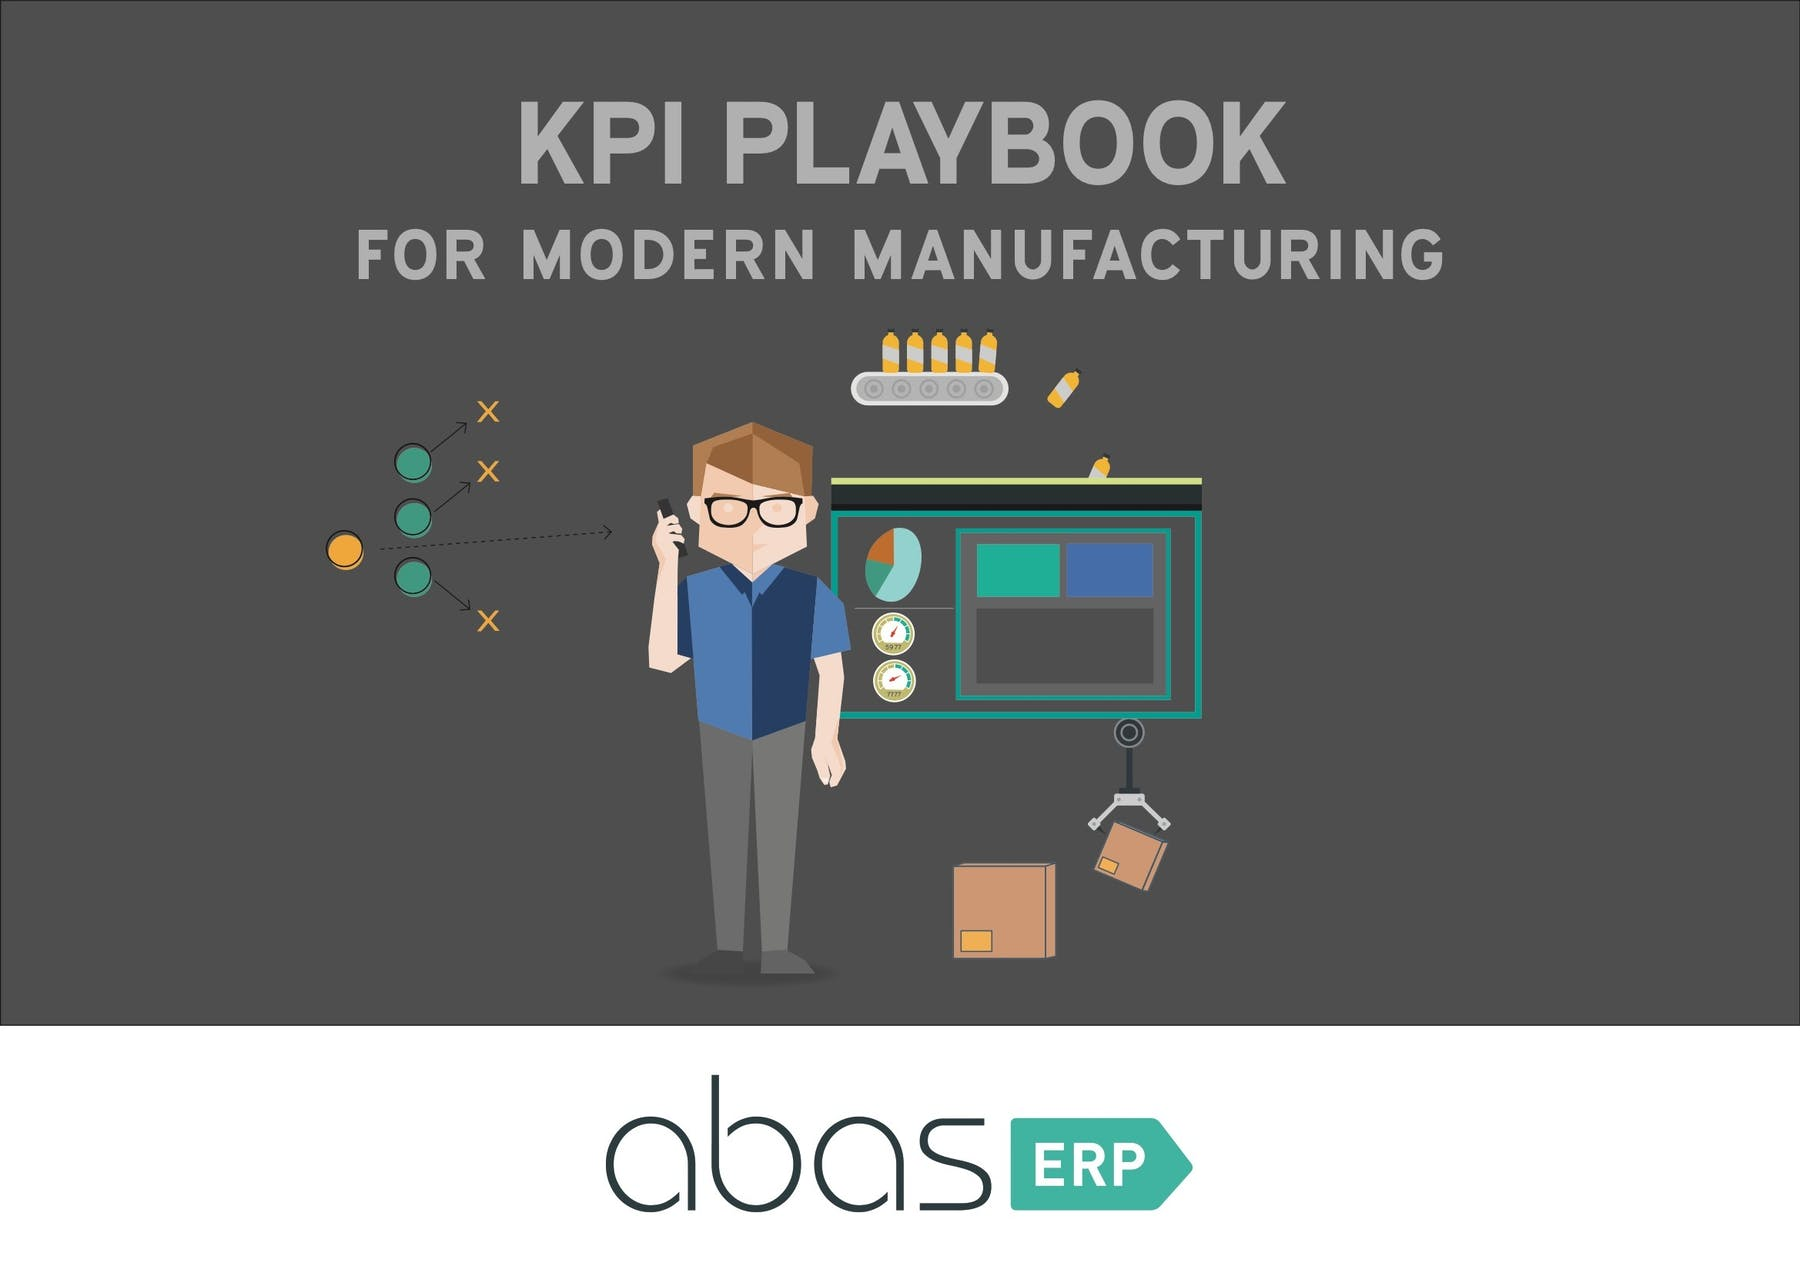 abas ERP White Paper - KPI Playbook for Modern Manufacturing